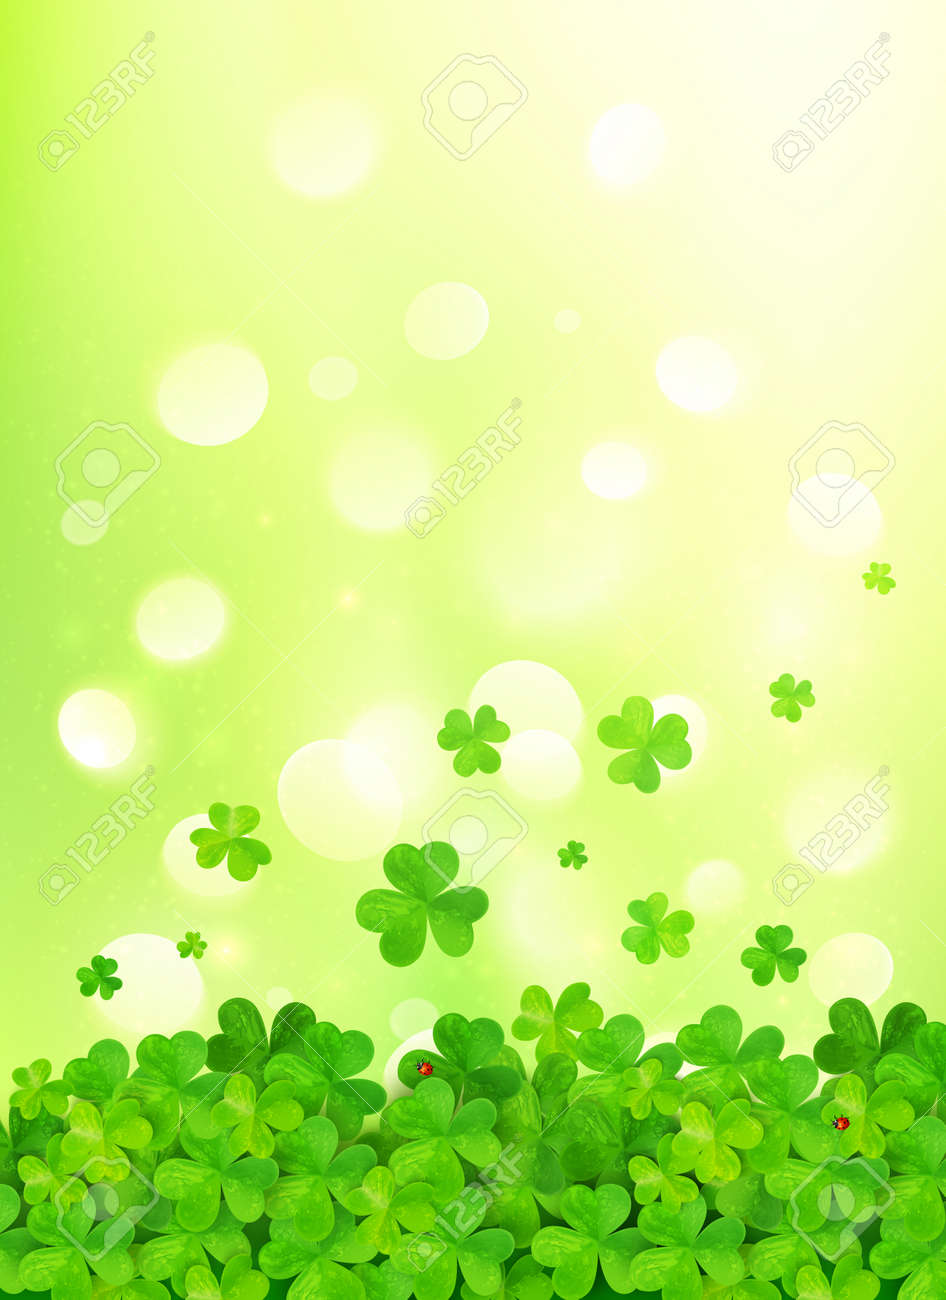 Light Green Vector Background With Clovers Royalty Free Cliparts